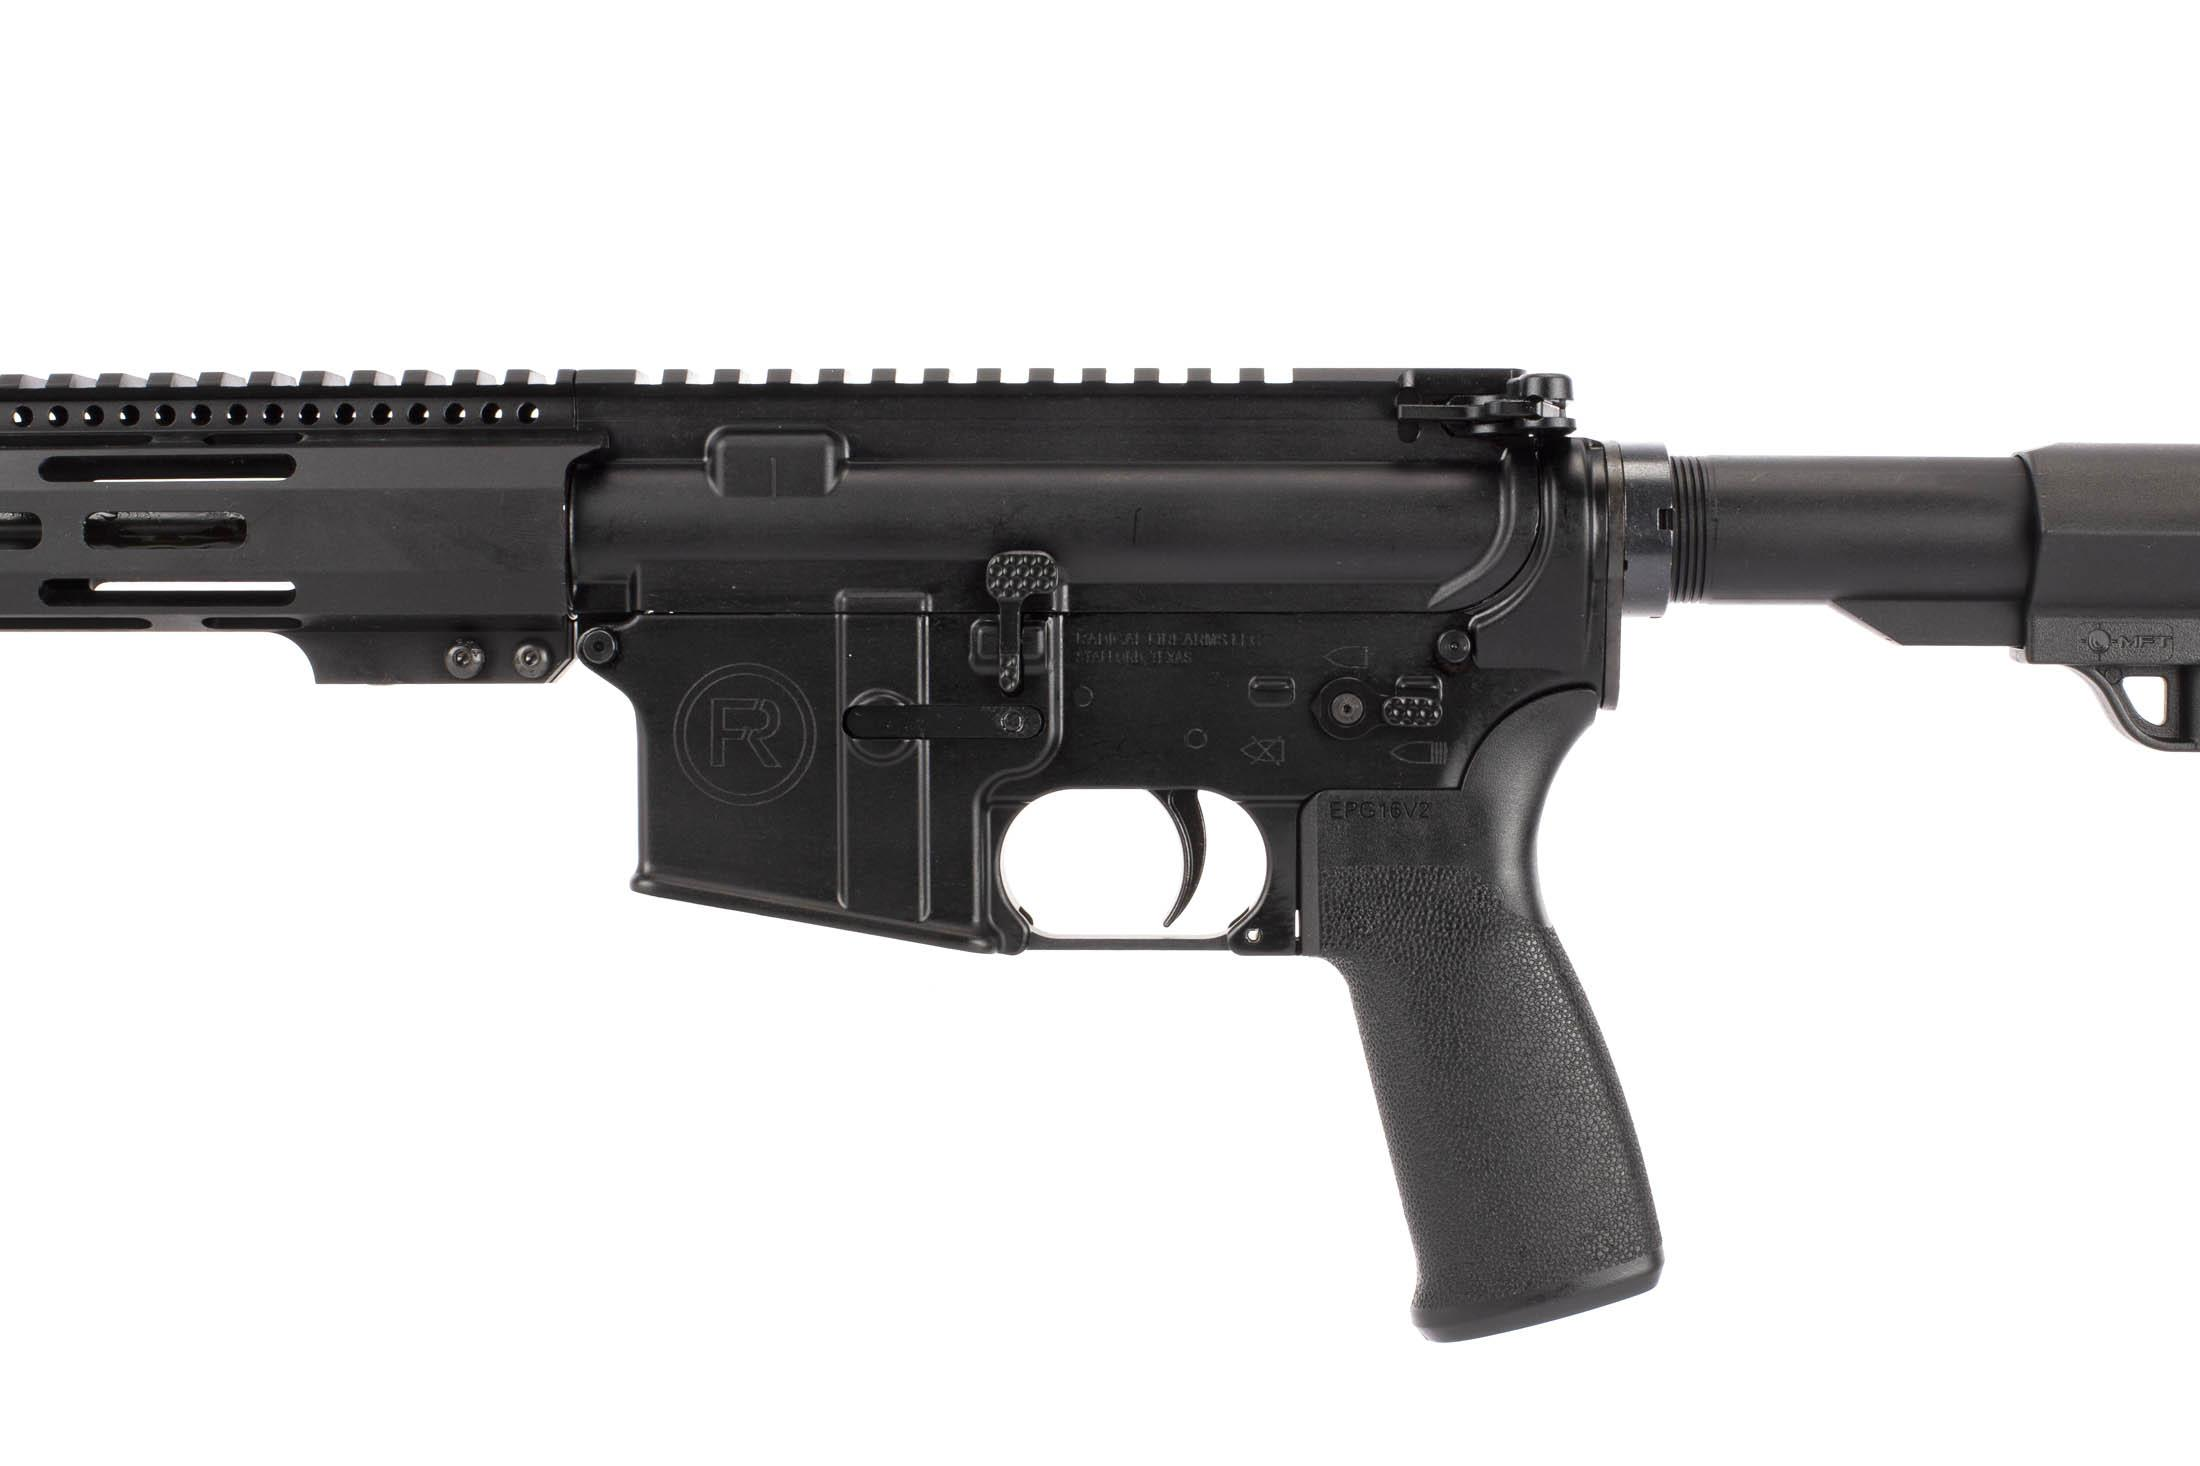 Radical Firearms 16in 5.56 NATO AR-15 features an enhanced bolt catch for easy manipulations